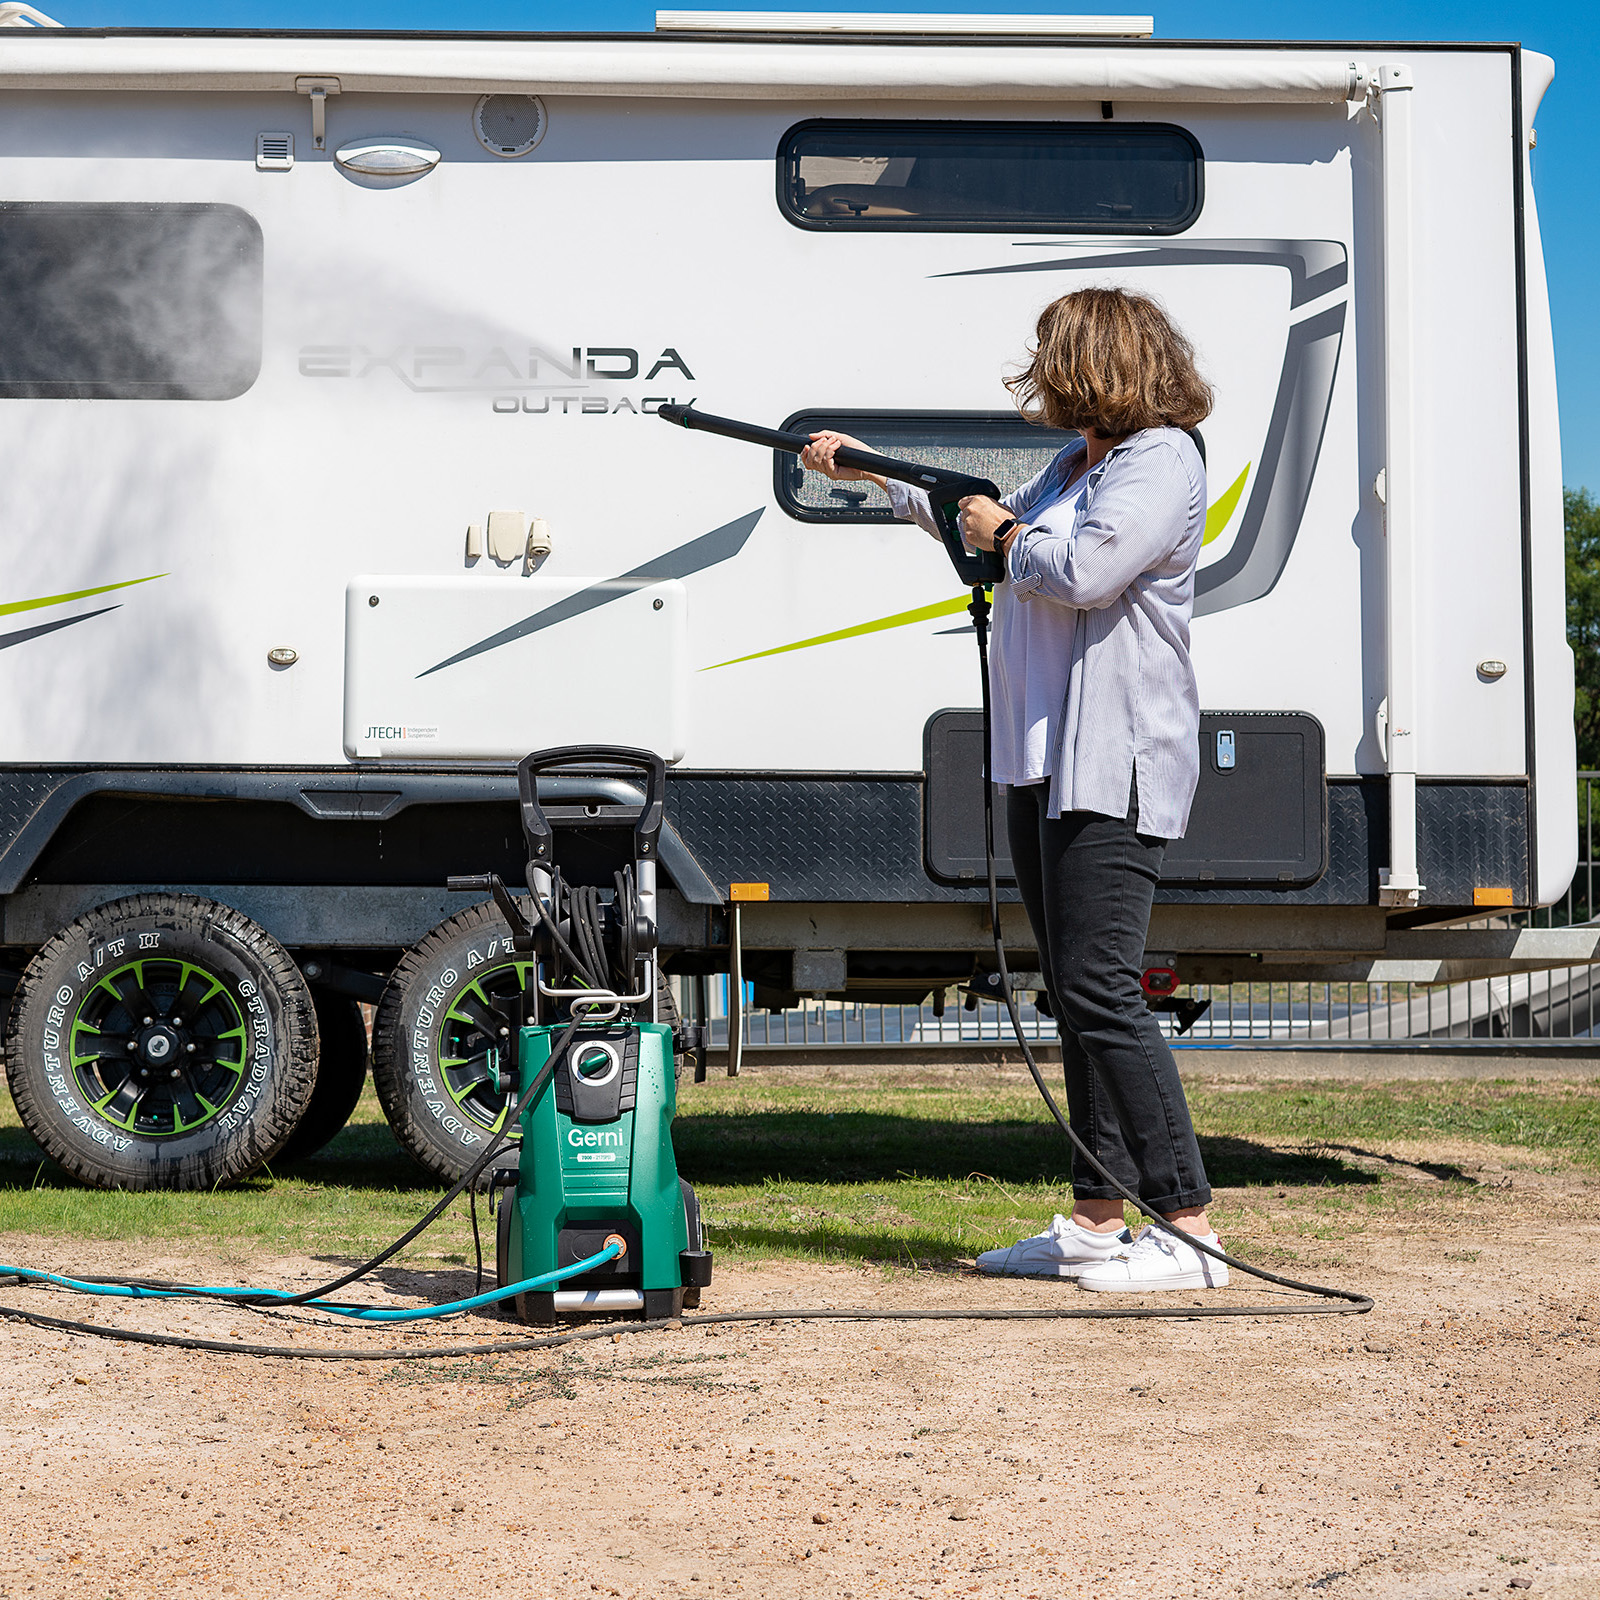 Gerni 7000 - Application Usage - High Pressure Washer Caravan